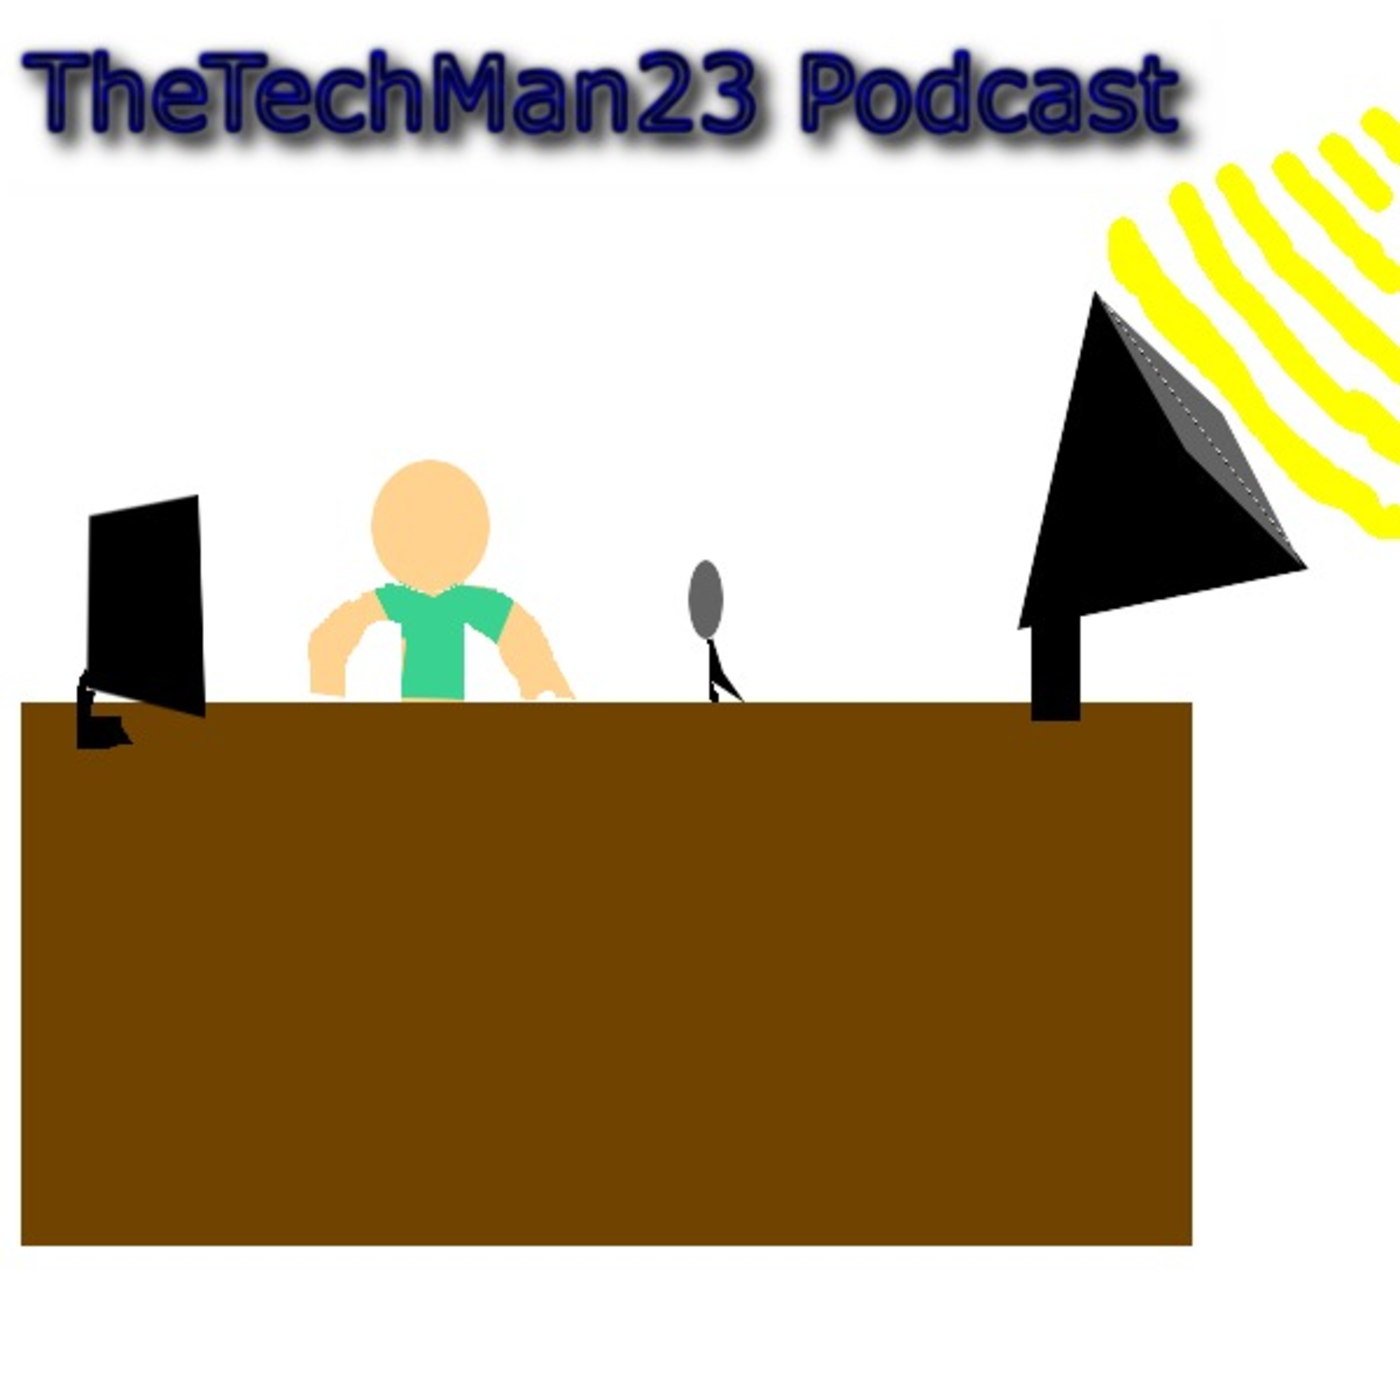 TheTechMan23 Podcast